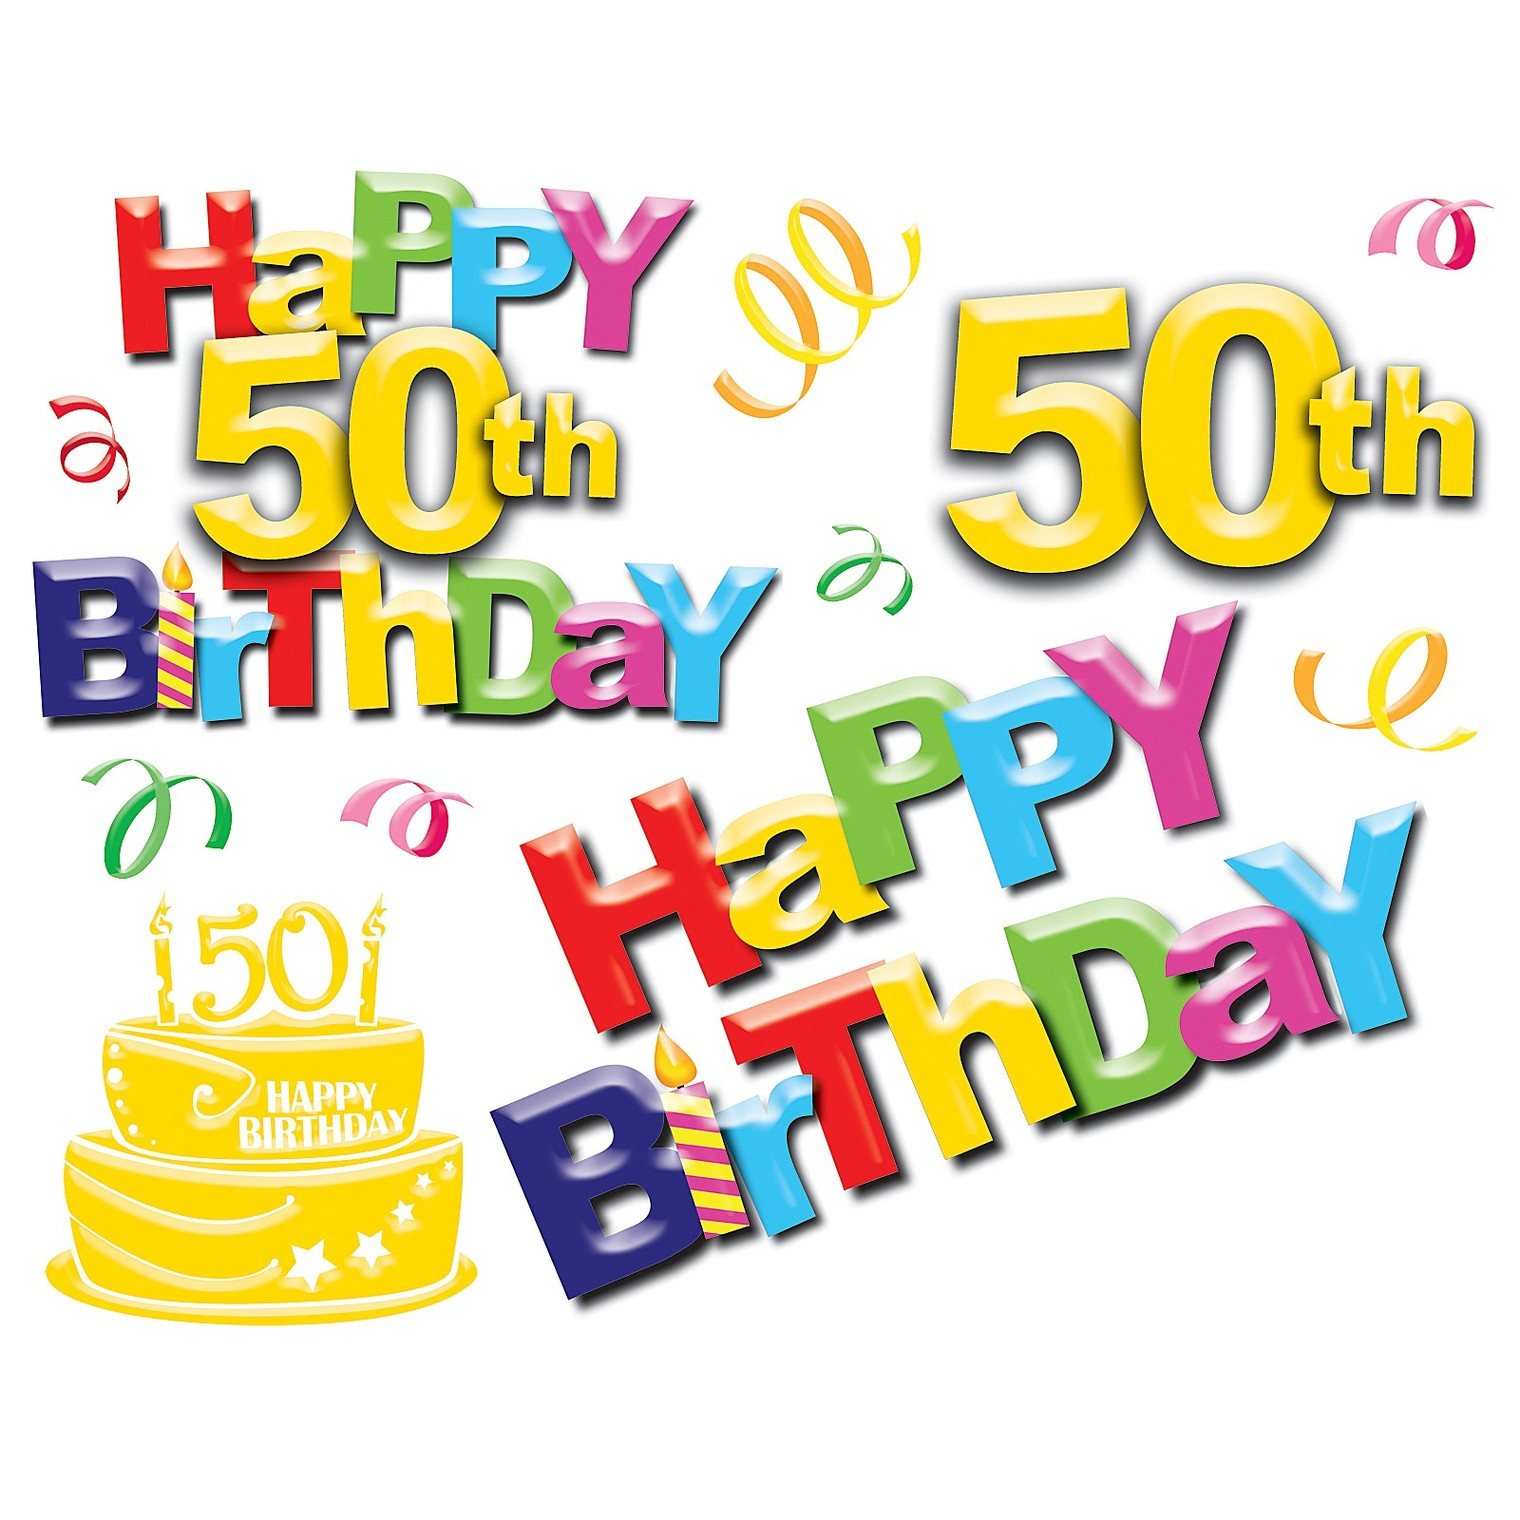 50th birthday banner clipart vector black and white Free Fiftieth Birthday Cliparts, Download Free Clip Art, Free Clip ... vector black and white